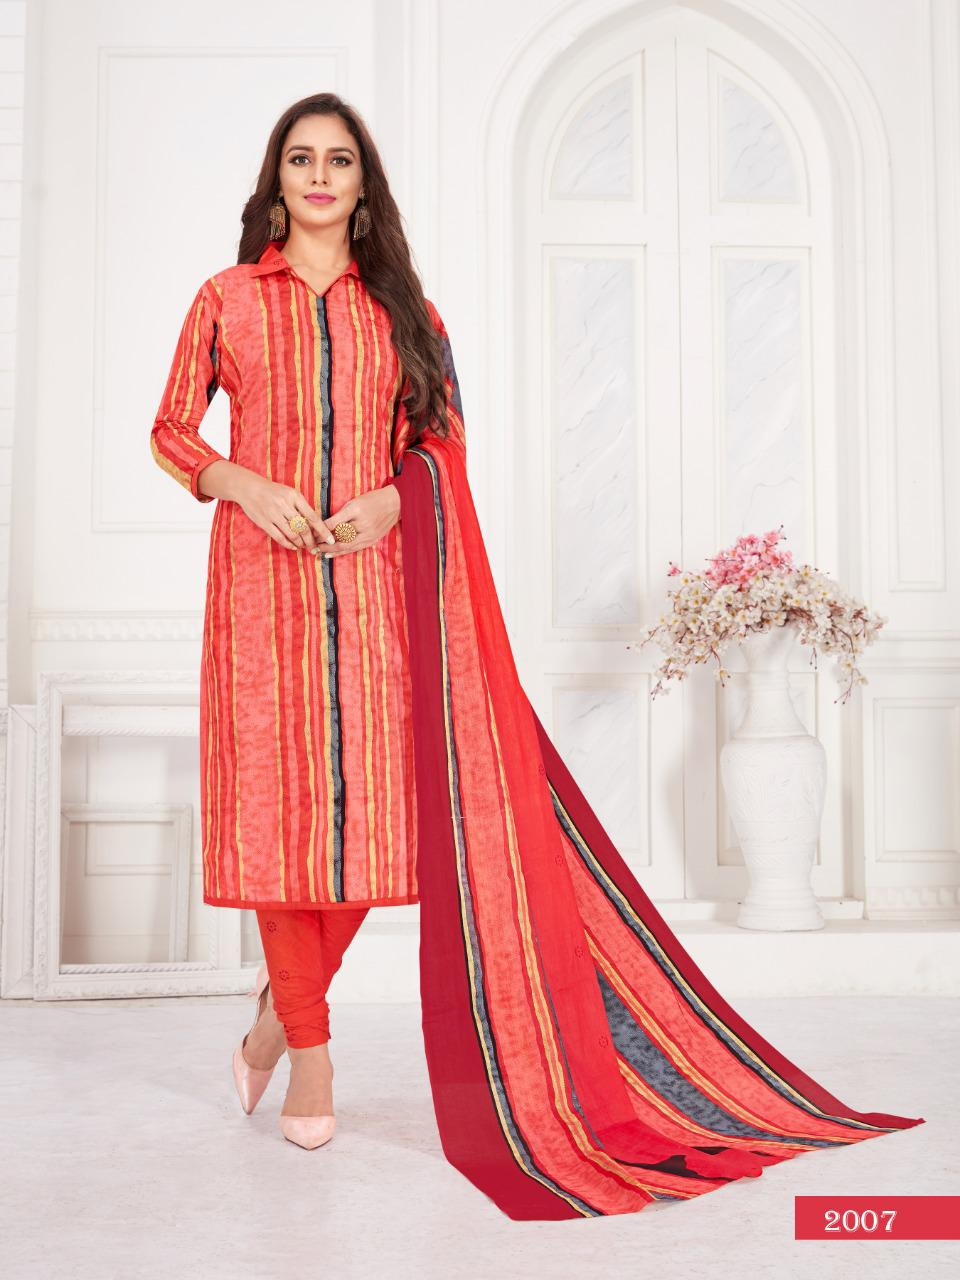 Kuber Zeal  Stylish Pure Cotton Fancy Salwar Suit Wear Catalog at Wholesale rate